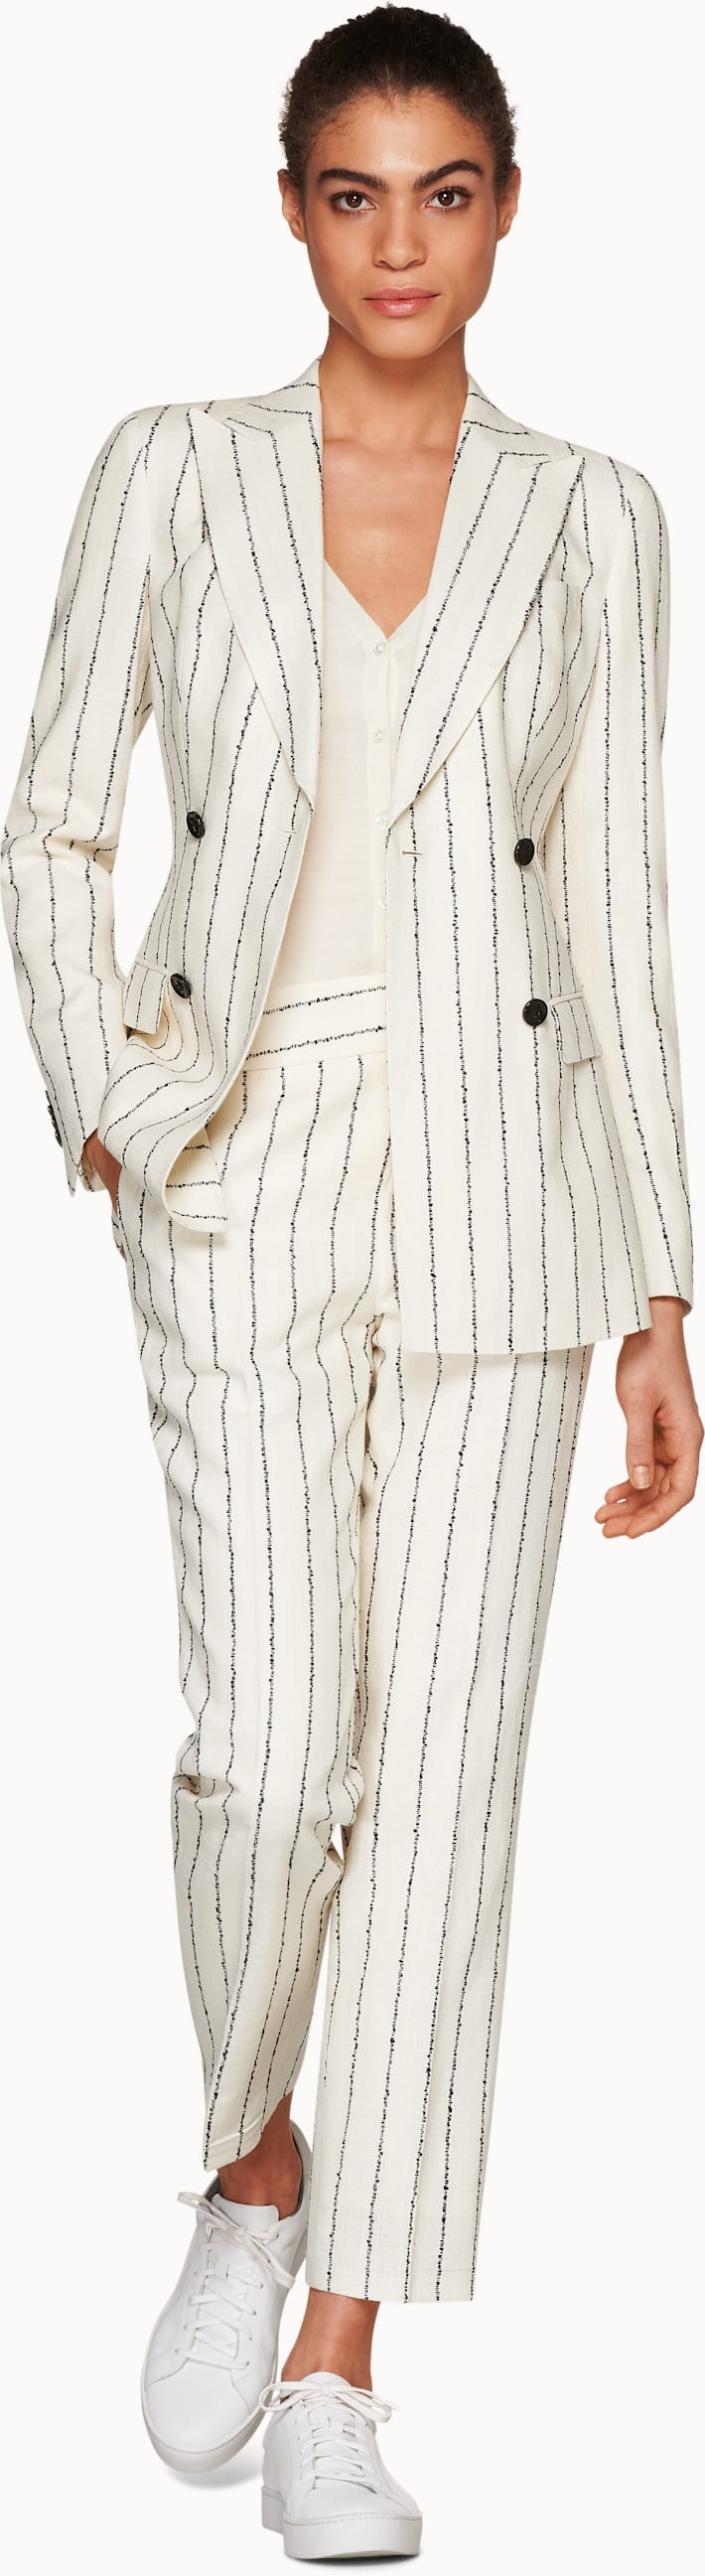 Cameron White Striped Suit